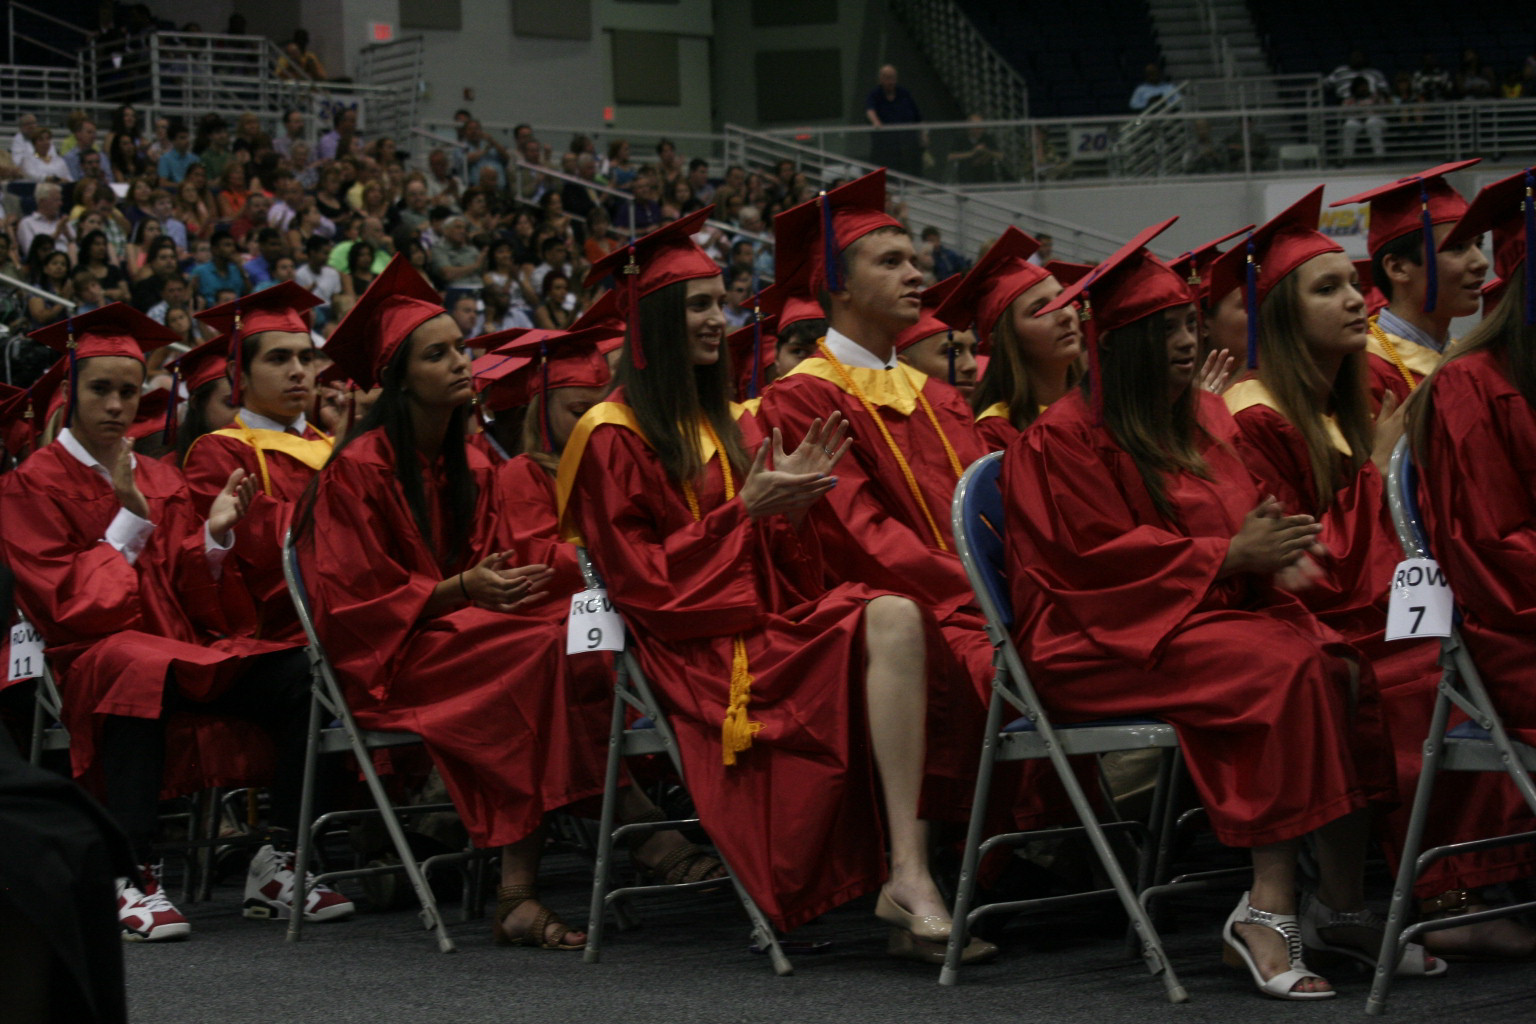 Students clapped for the speakers at the graduation ceremony, held at Hofstra University.